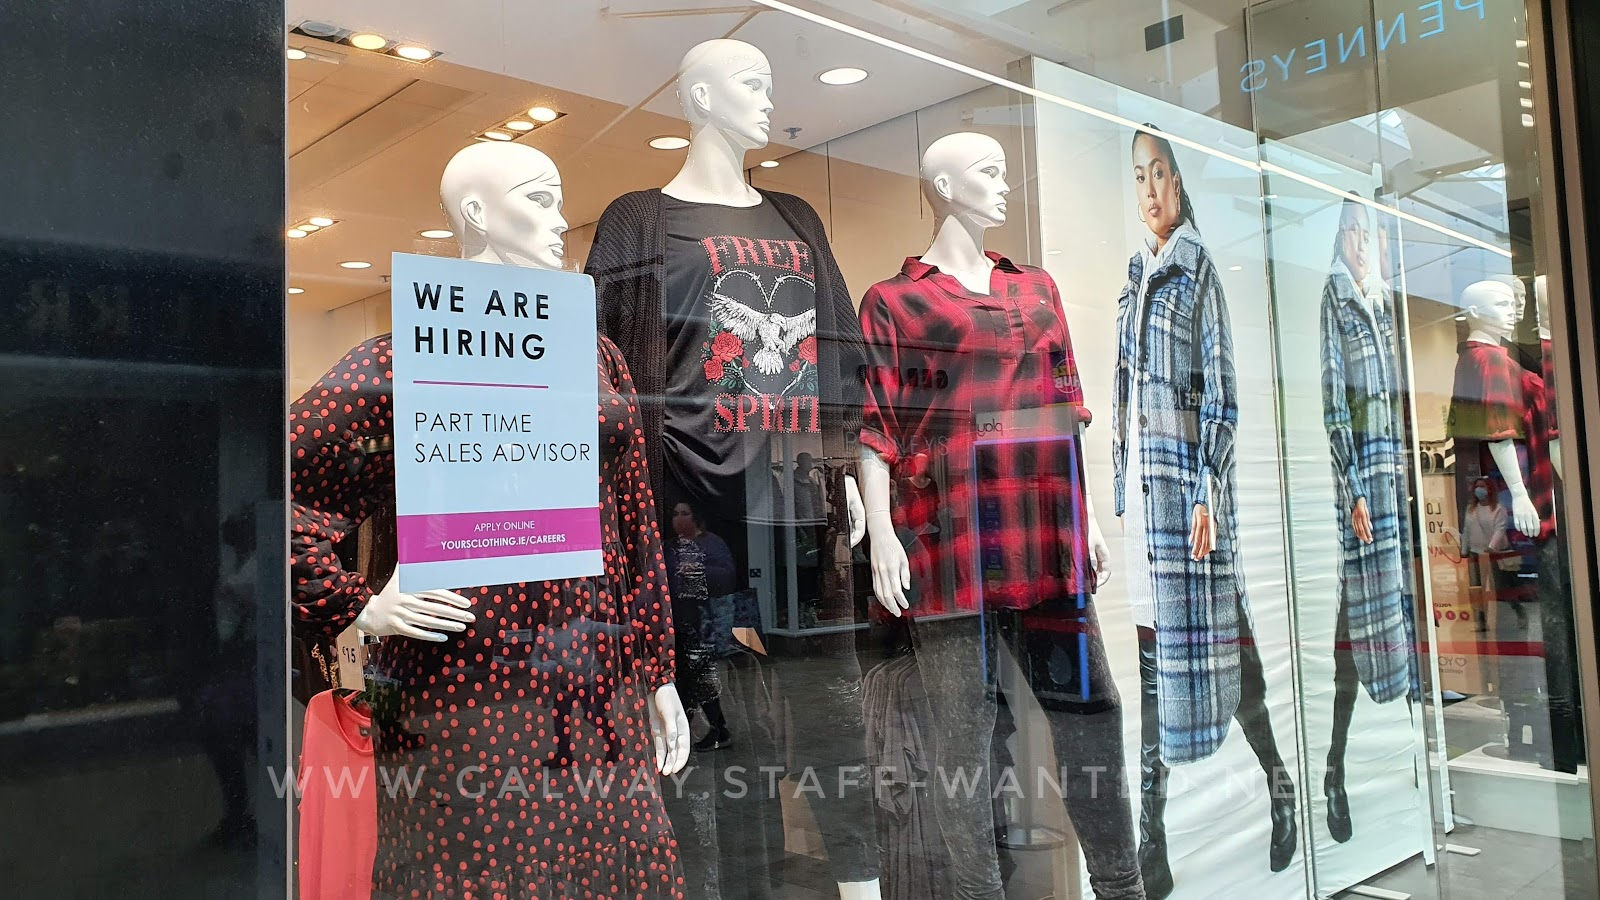 Shop window with printed transfer 'we are hiring' sign - models wearing a red print dotted dress, red plaid oversided shirt, Free Spirit tee-shirt with a stylized eagle, and a poster of a blue and white plaid fabric winter coat